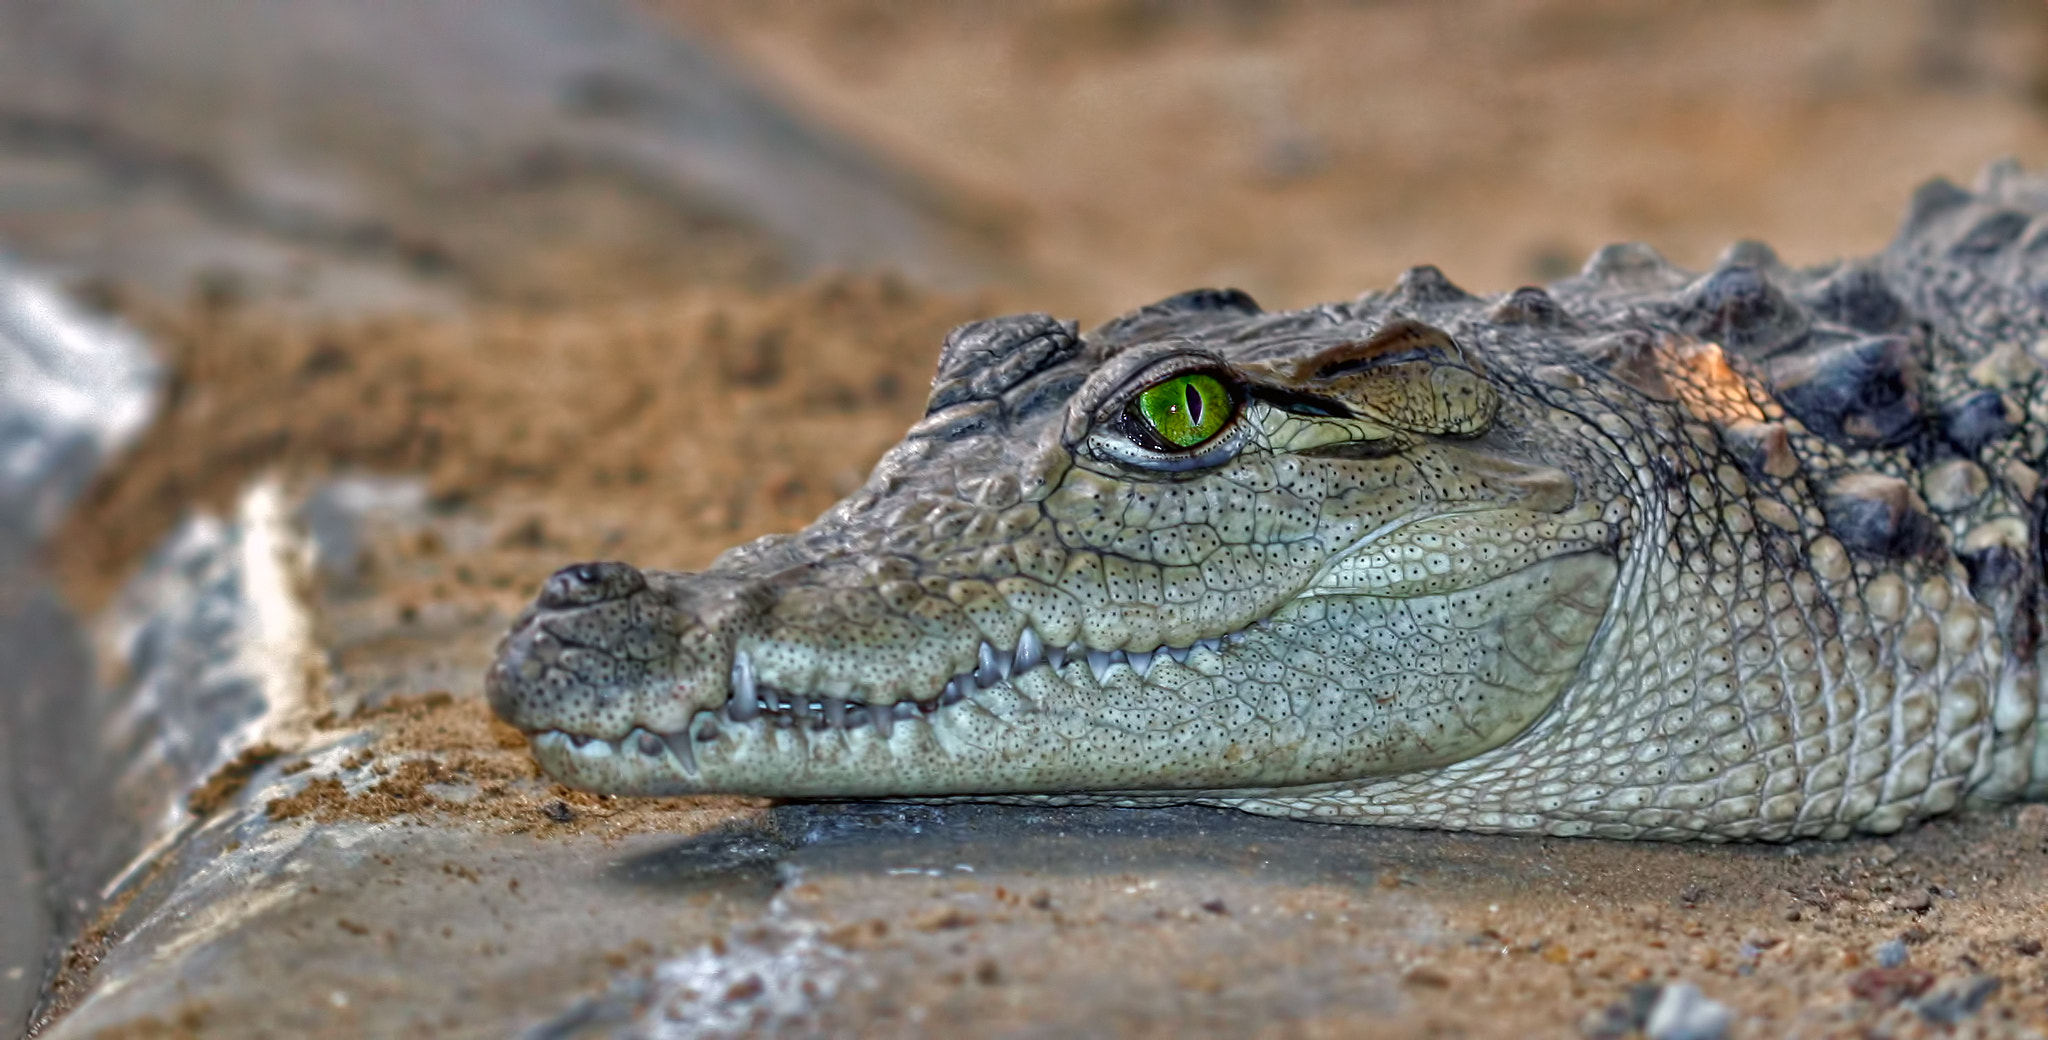 Photograph Croc by Jeremy Christian on 500px